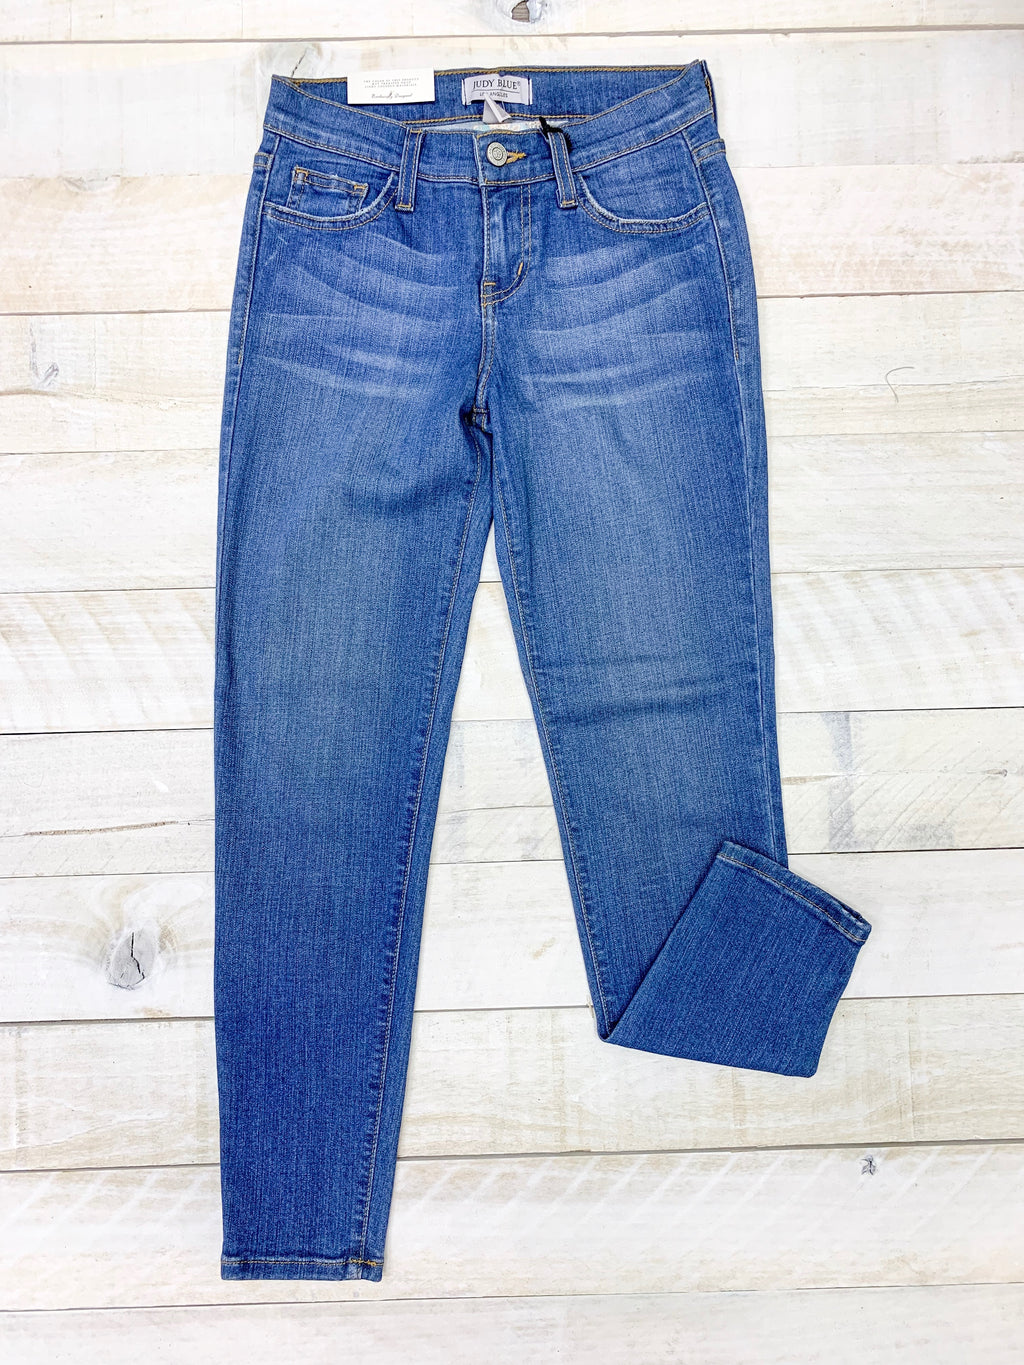 Blue Skinny Jean - Medium